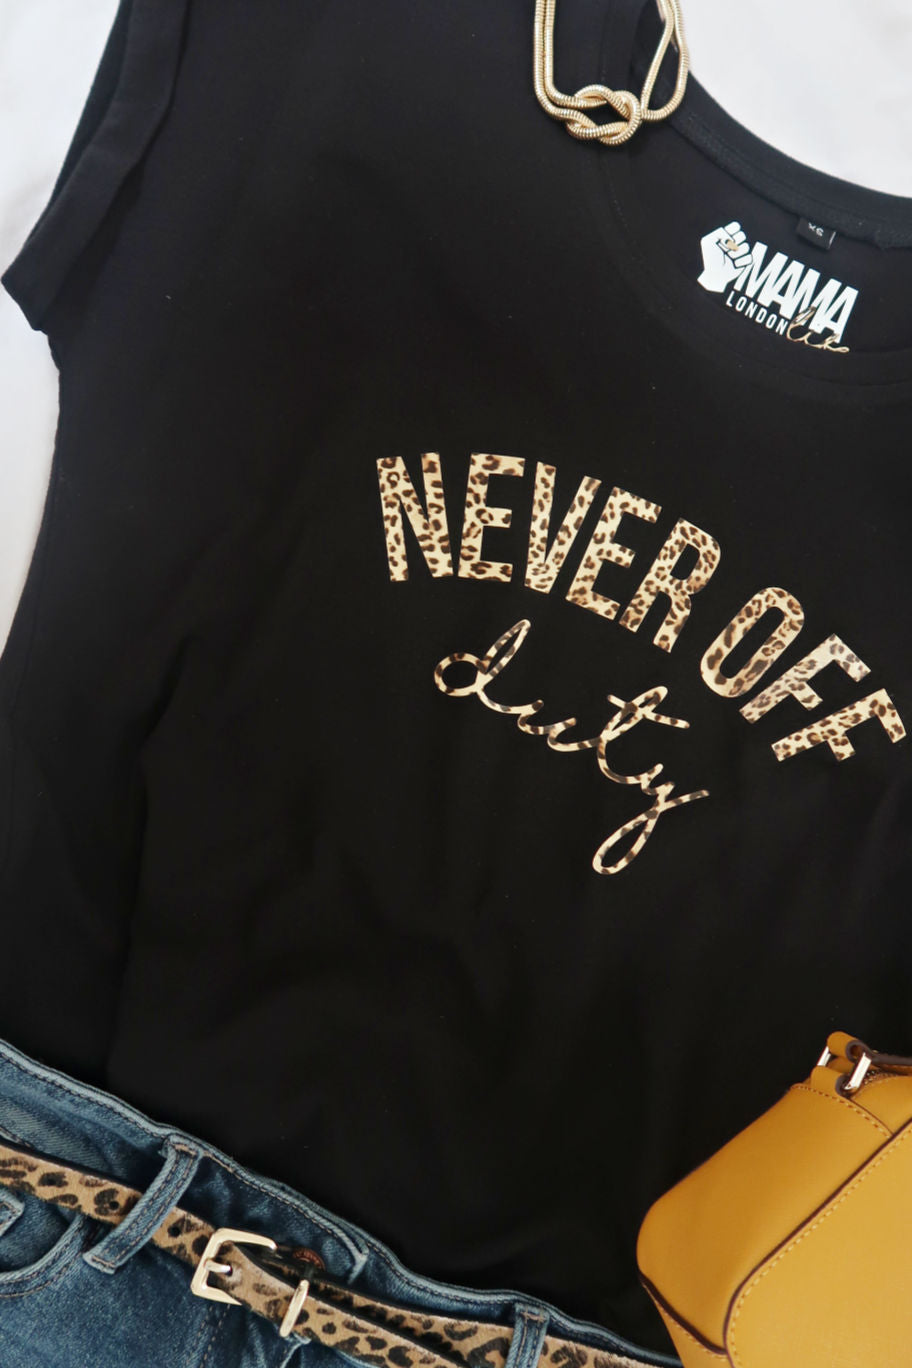 Never Off Duty black and leopard print t-shirt by Mama Life London